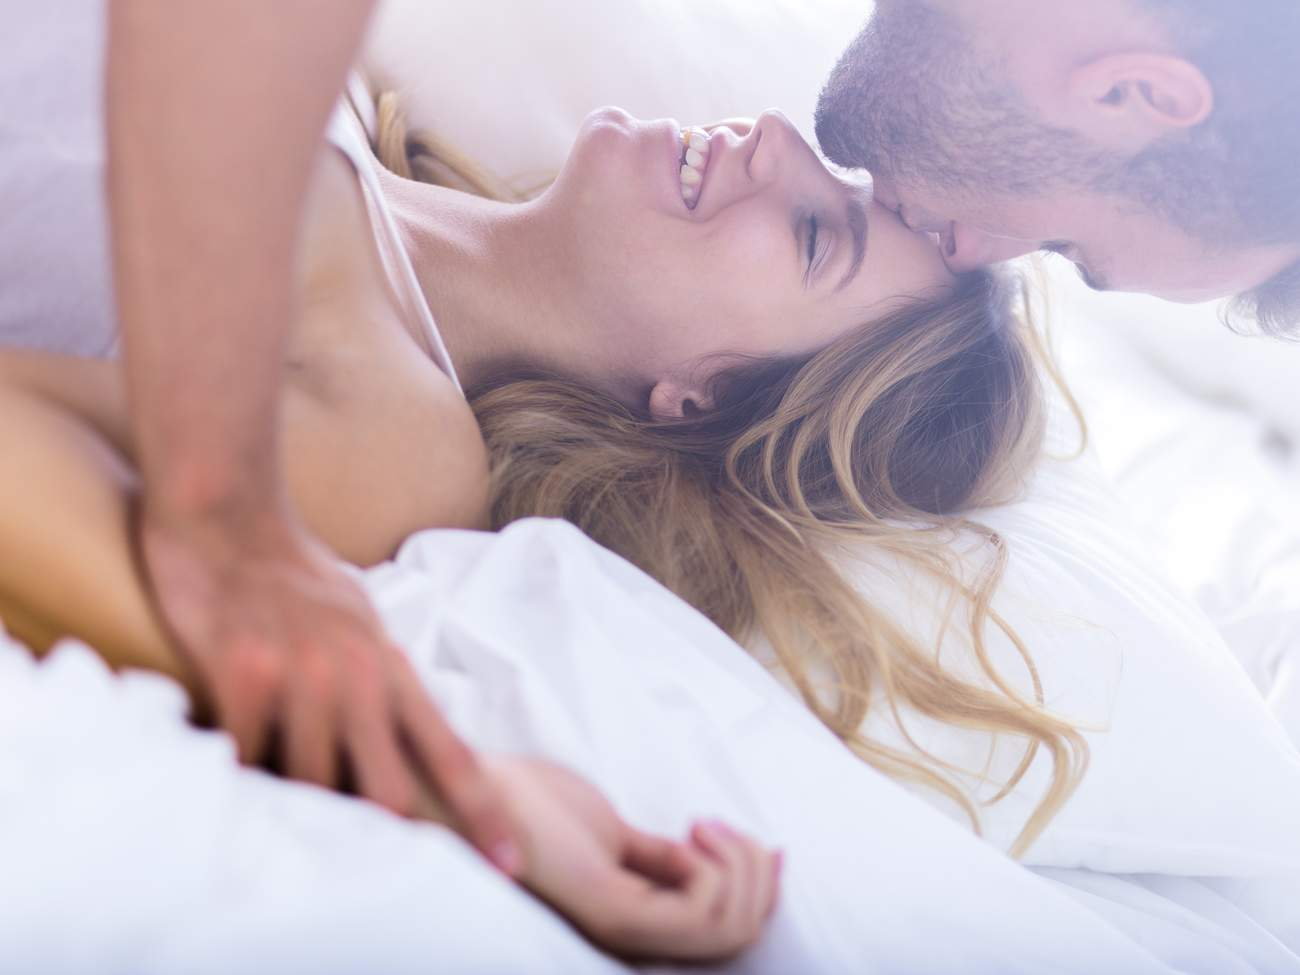 man and woman in bed smiling and having fun